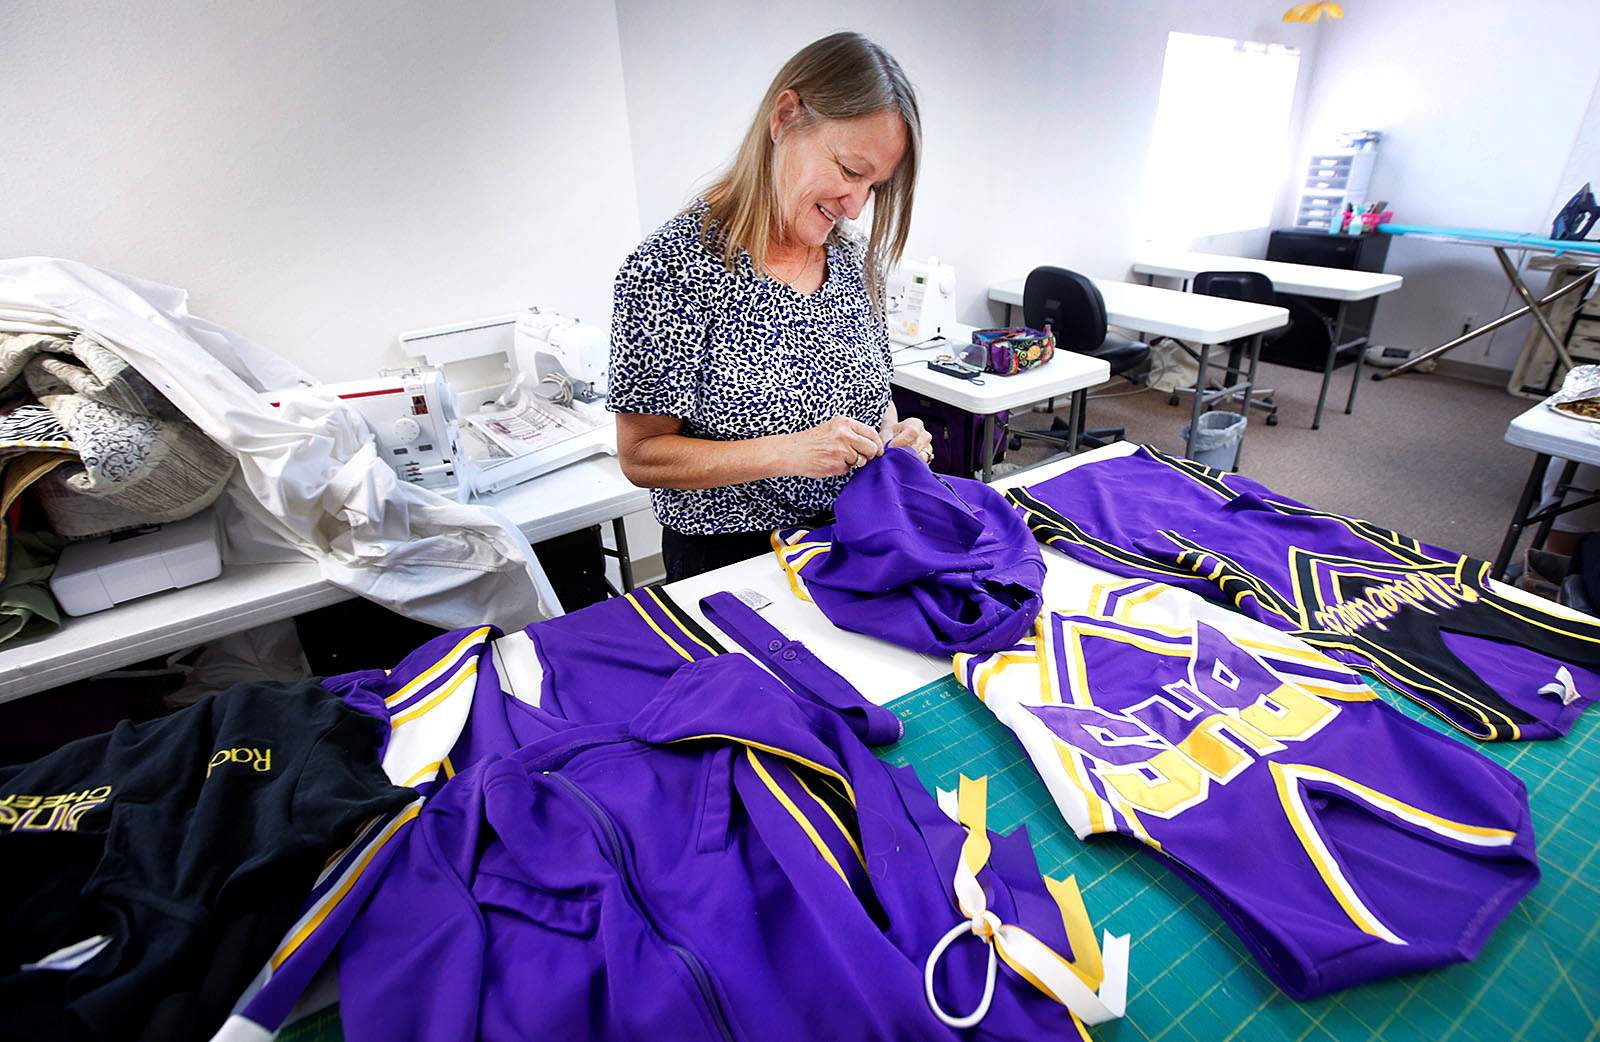 85d9cacd41 Ginger Domingos' daughter, Rachel, was a Bayfield High School cheerleader.  Since her daughter's death, Ginger has made teddy bears out of Rachel's  uniforms ...